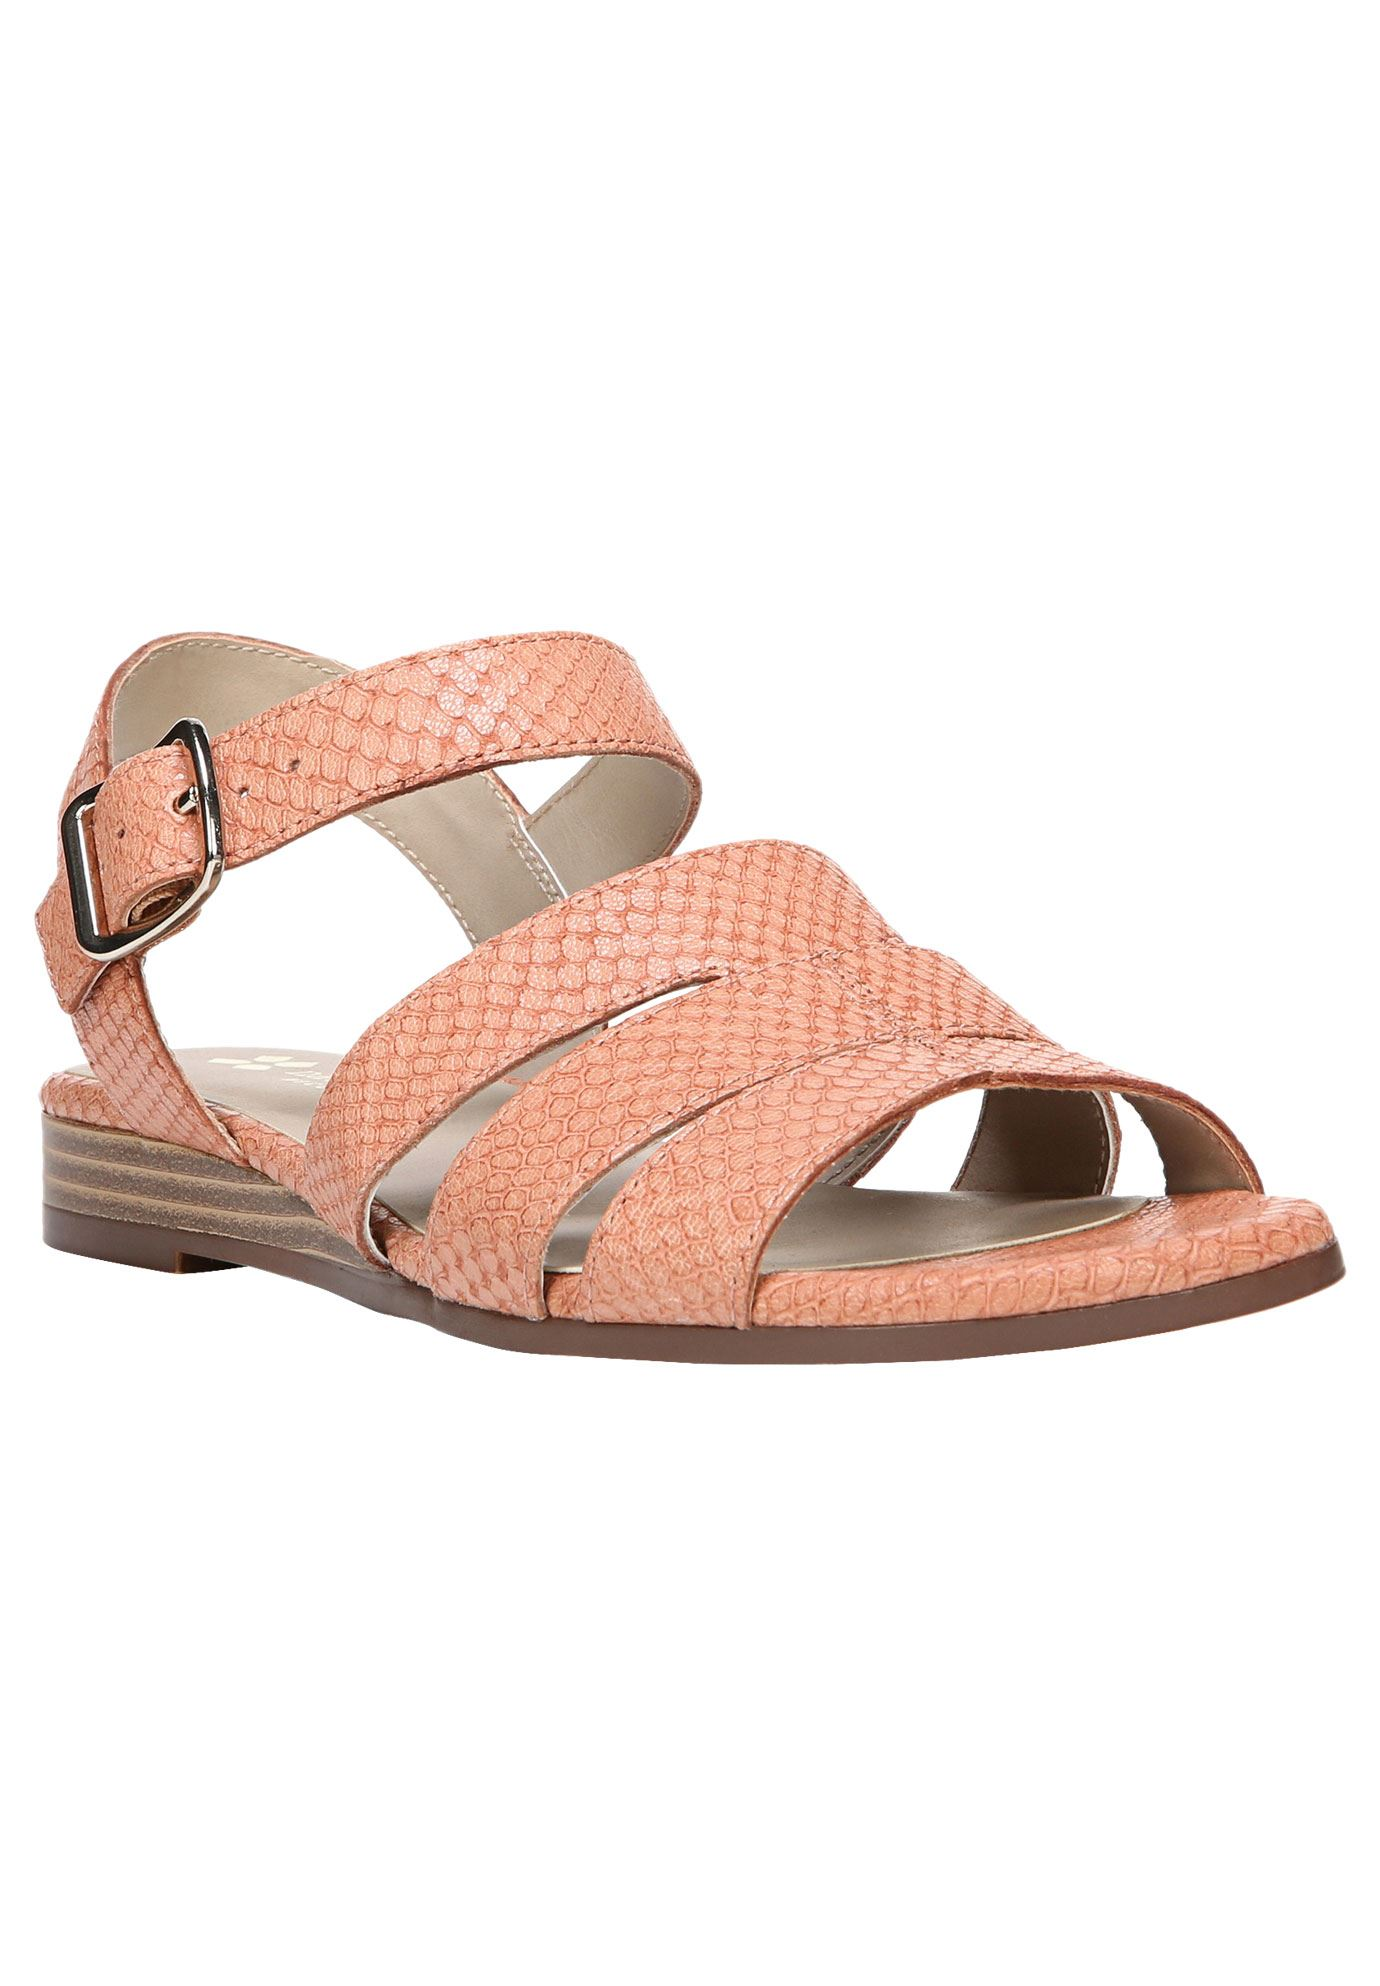 Kaye Sandals by Naturalizer®,